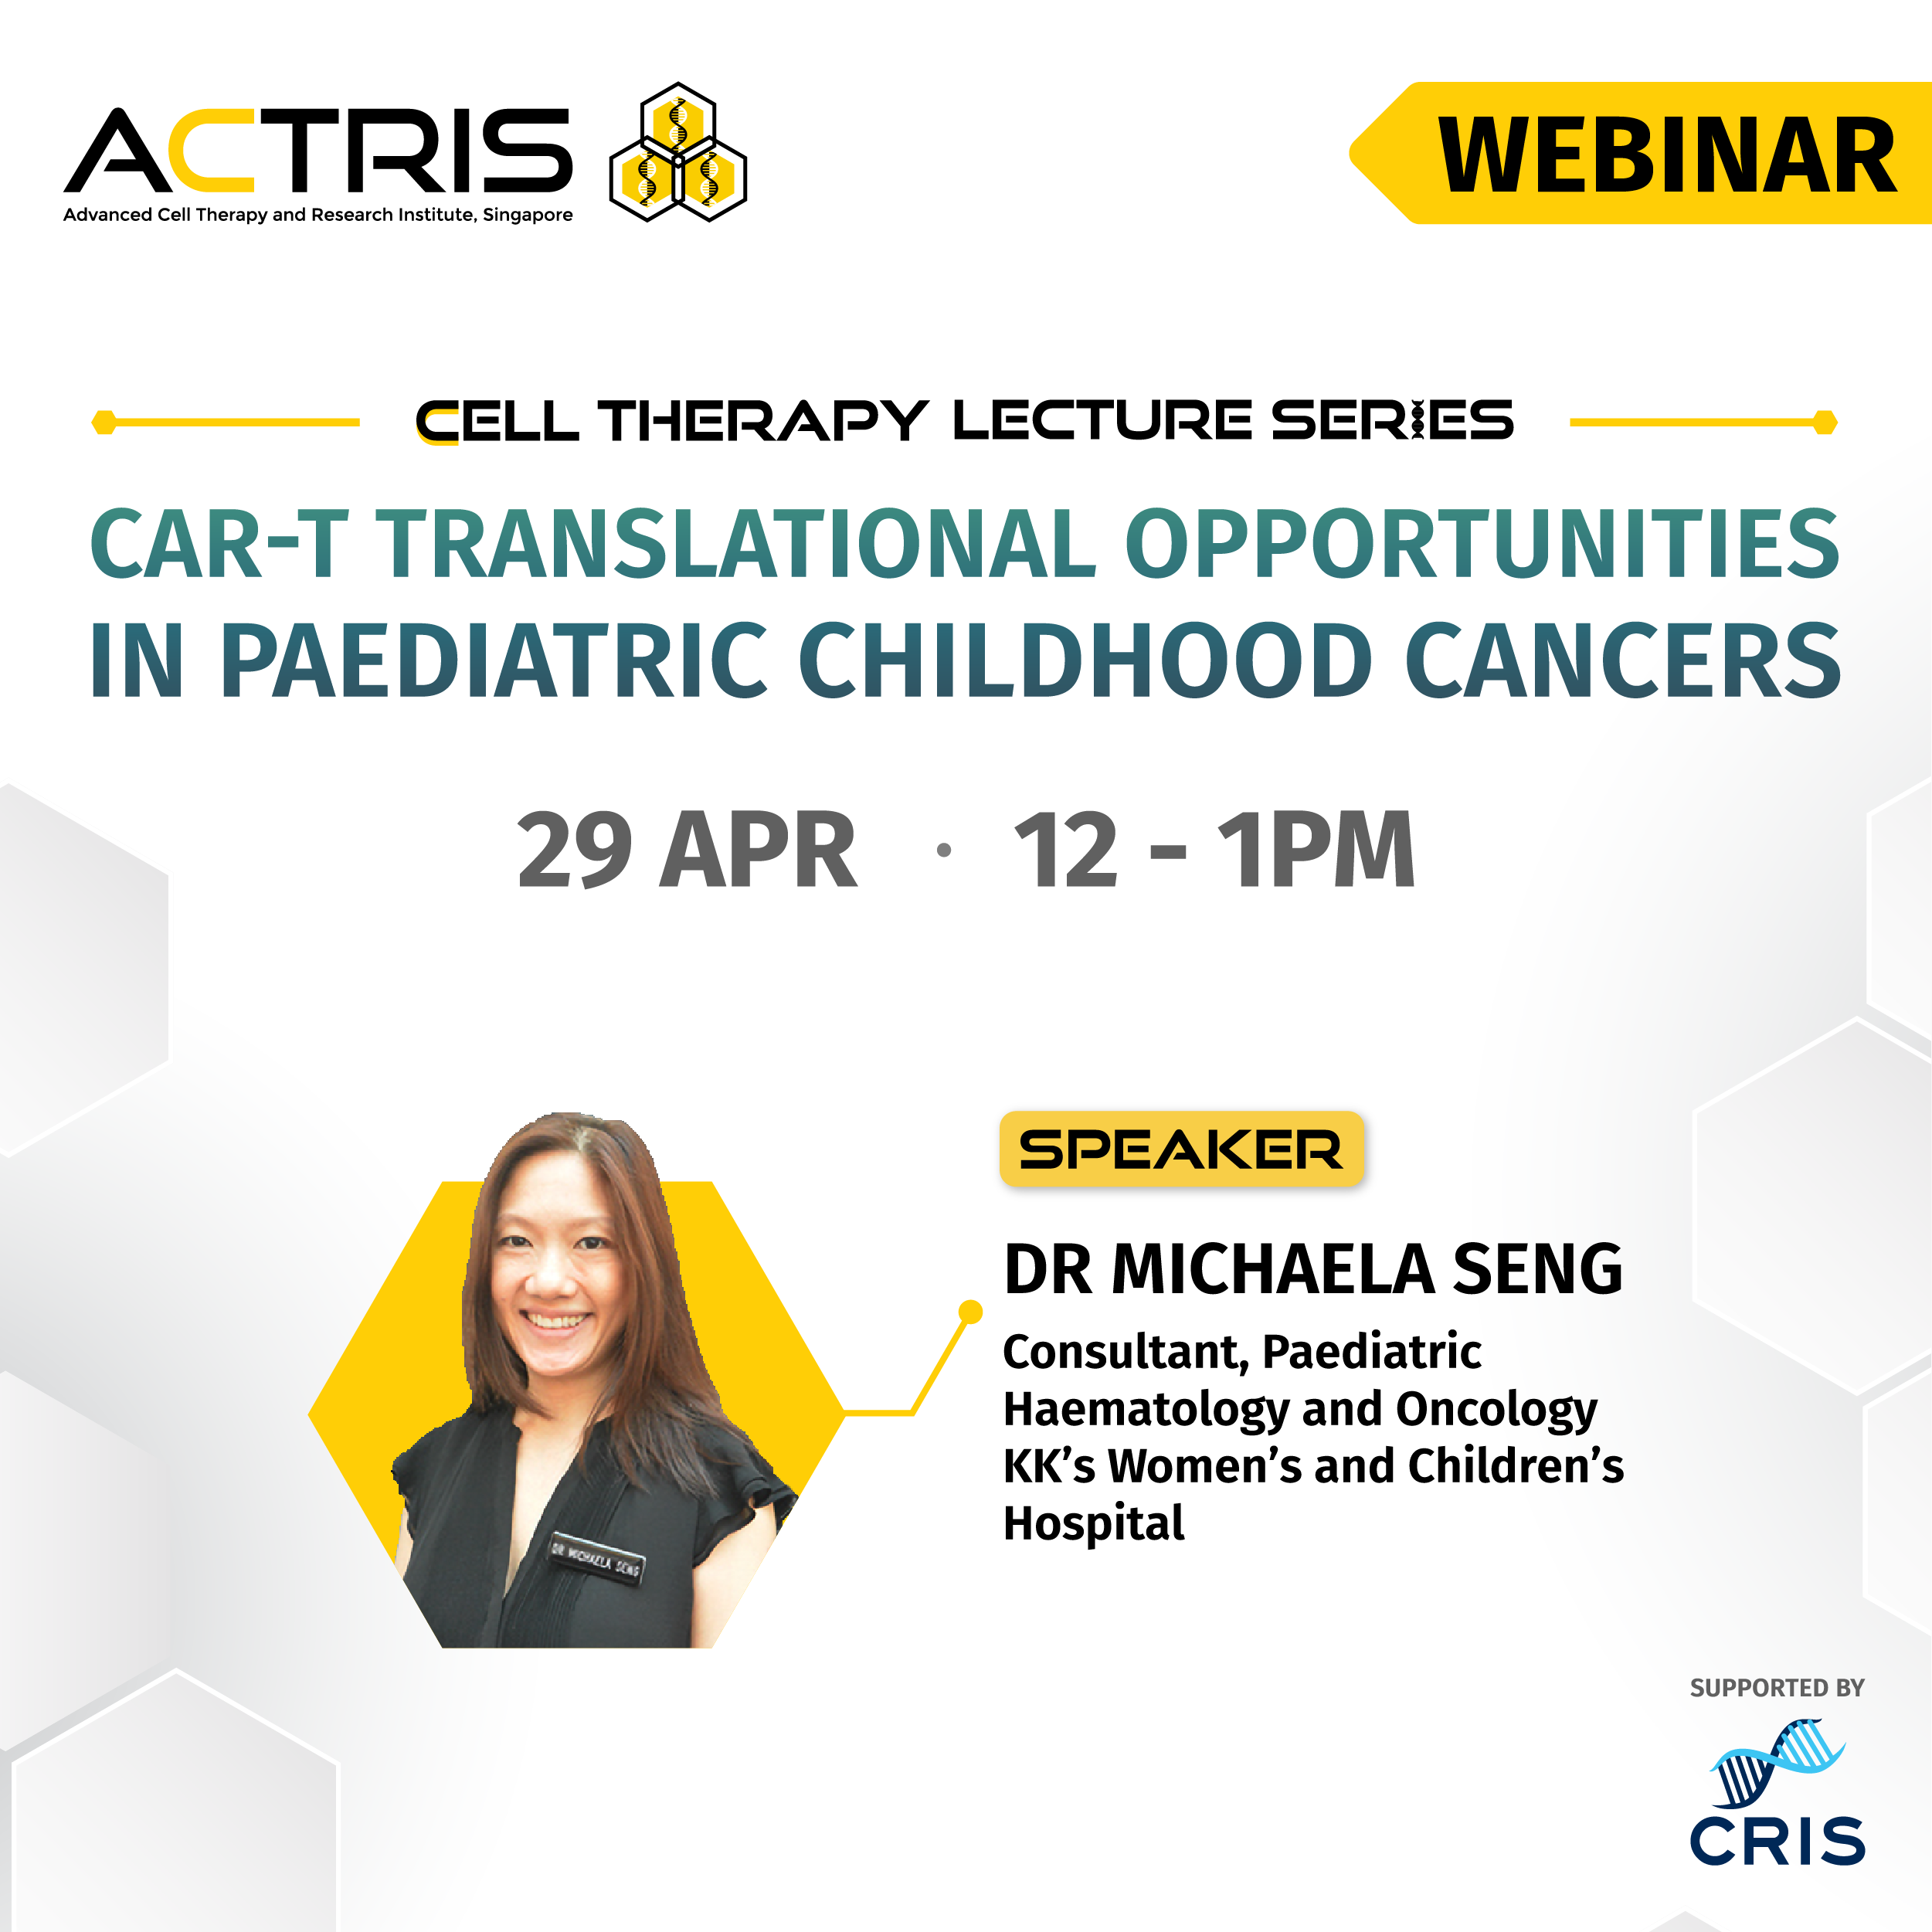 CAR-T Translational Opportunities In Paediatric Childhood Cancer